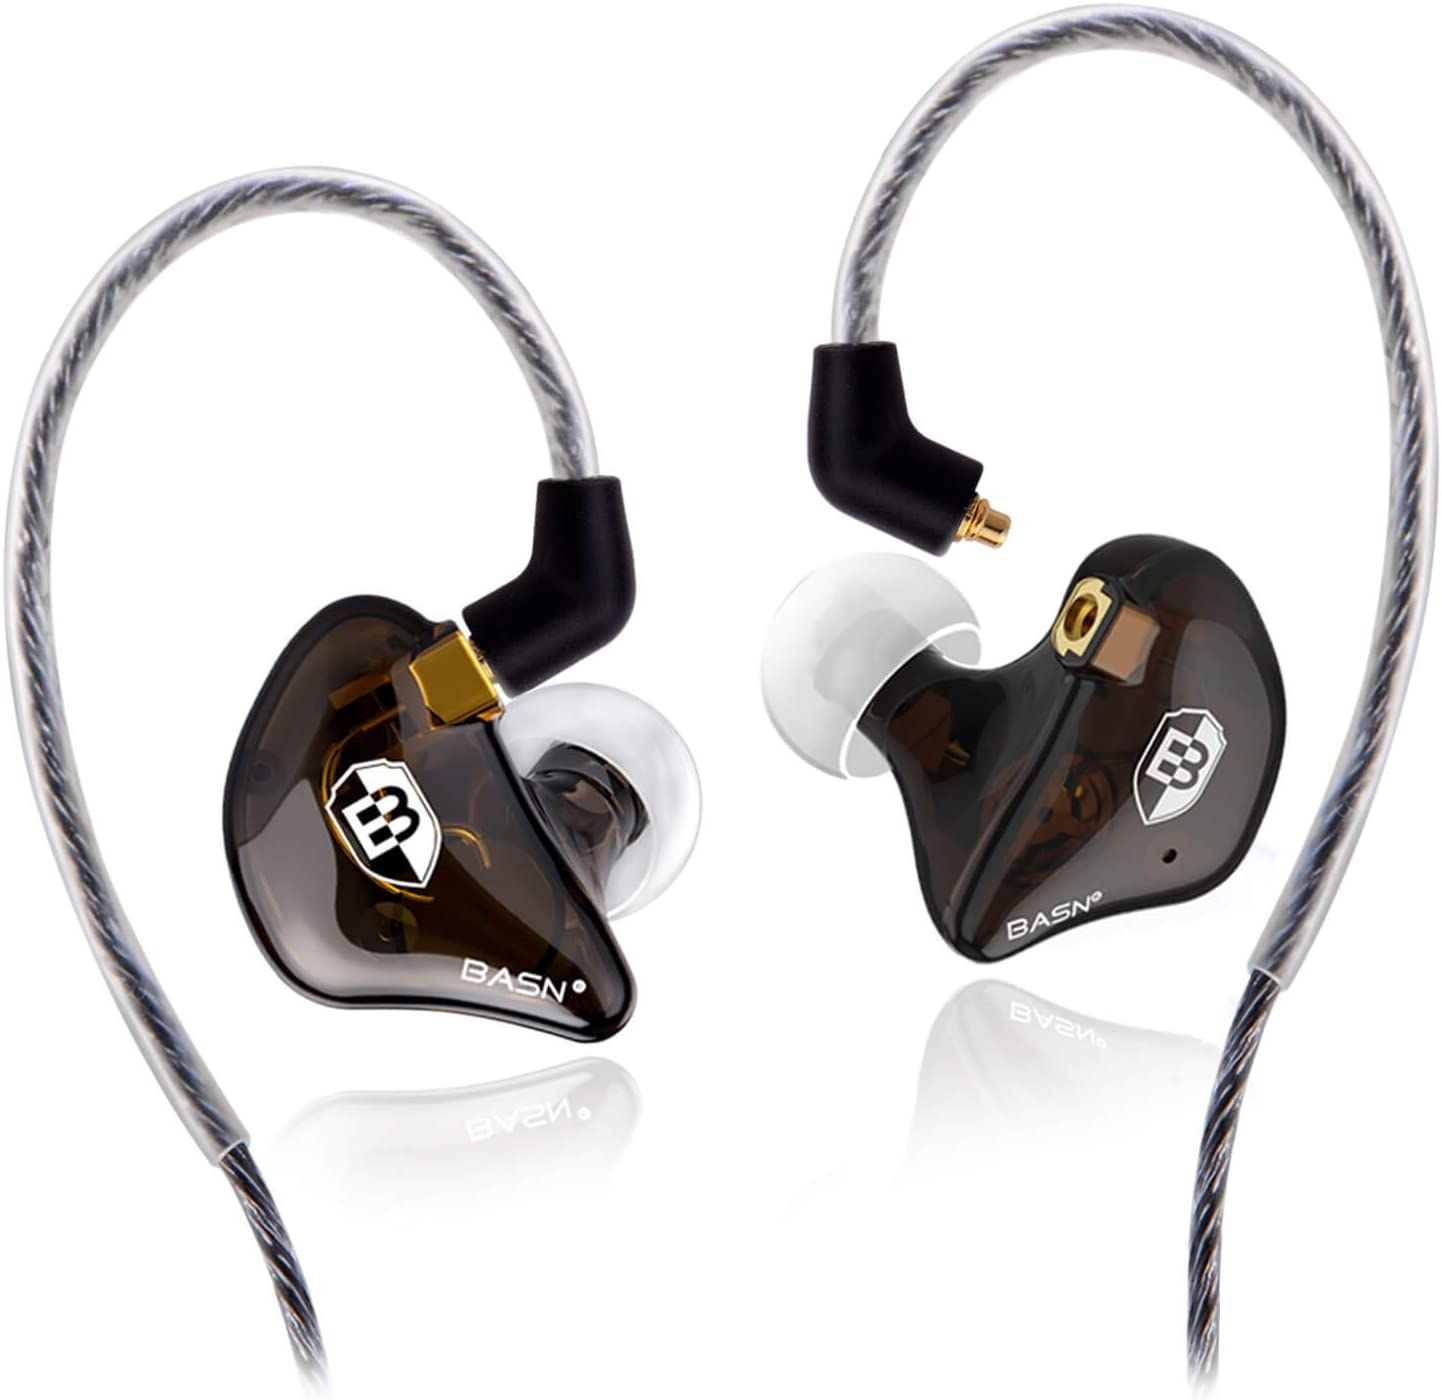 BASN High-Definition in Ear Monitor Headphones for Musicians with Detachable MMCX Earbuds; Dual Dynamic Drivers and Noise-Isolating (Brown)